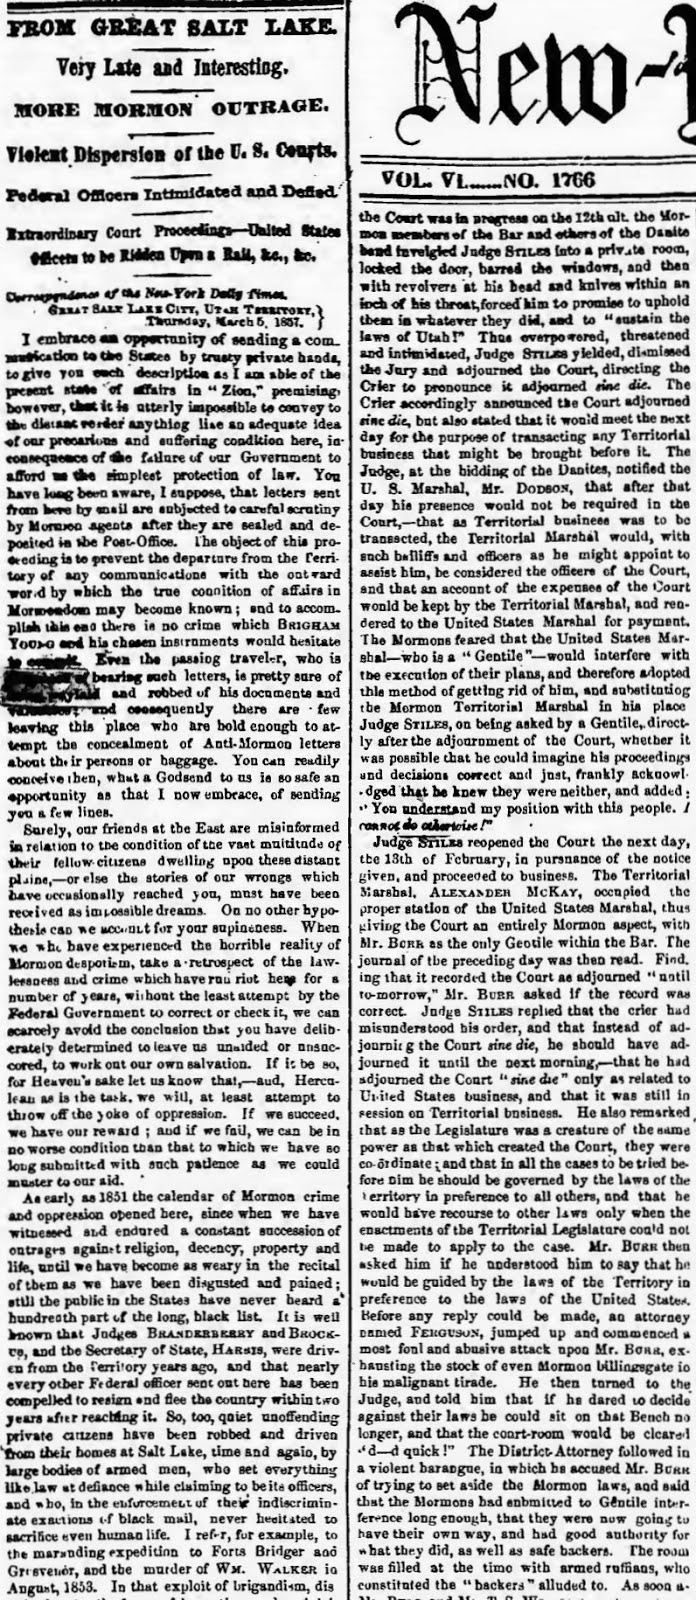 may 18 1857 new york daily times page 1 from great salt lake more mormon outrage violent dispersion of the u s courts